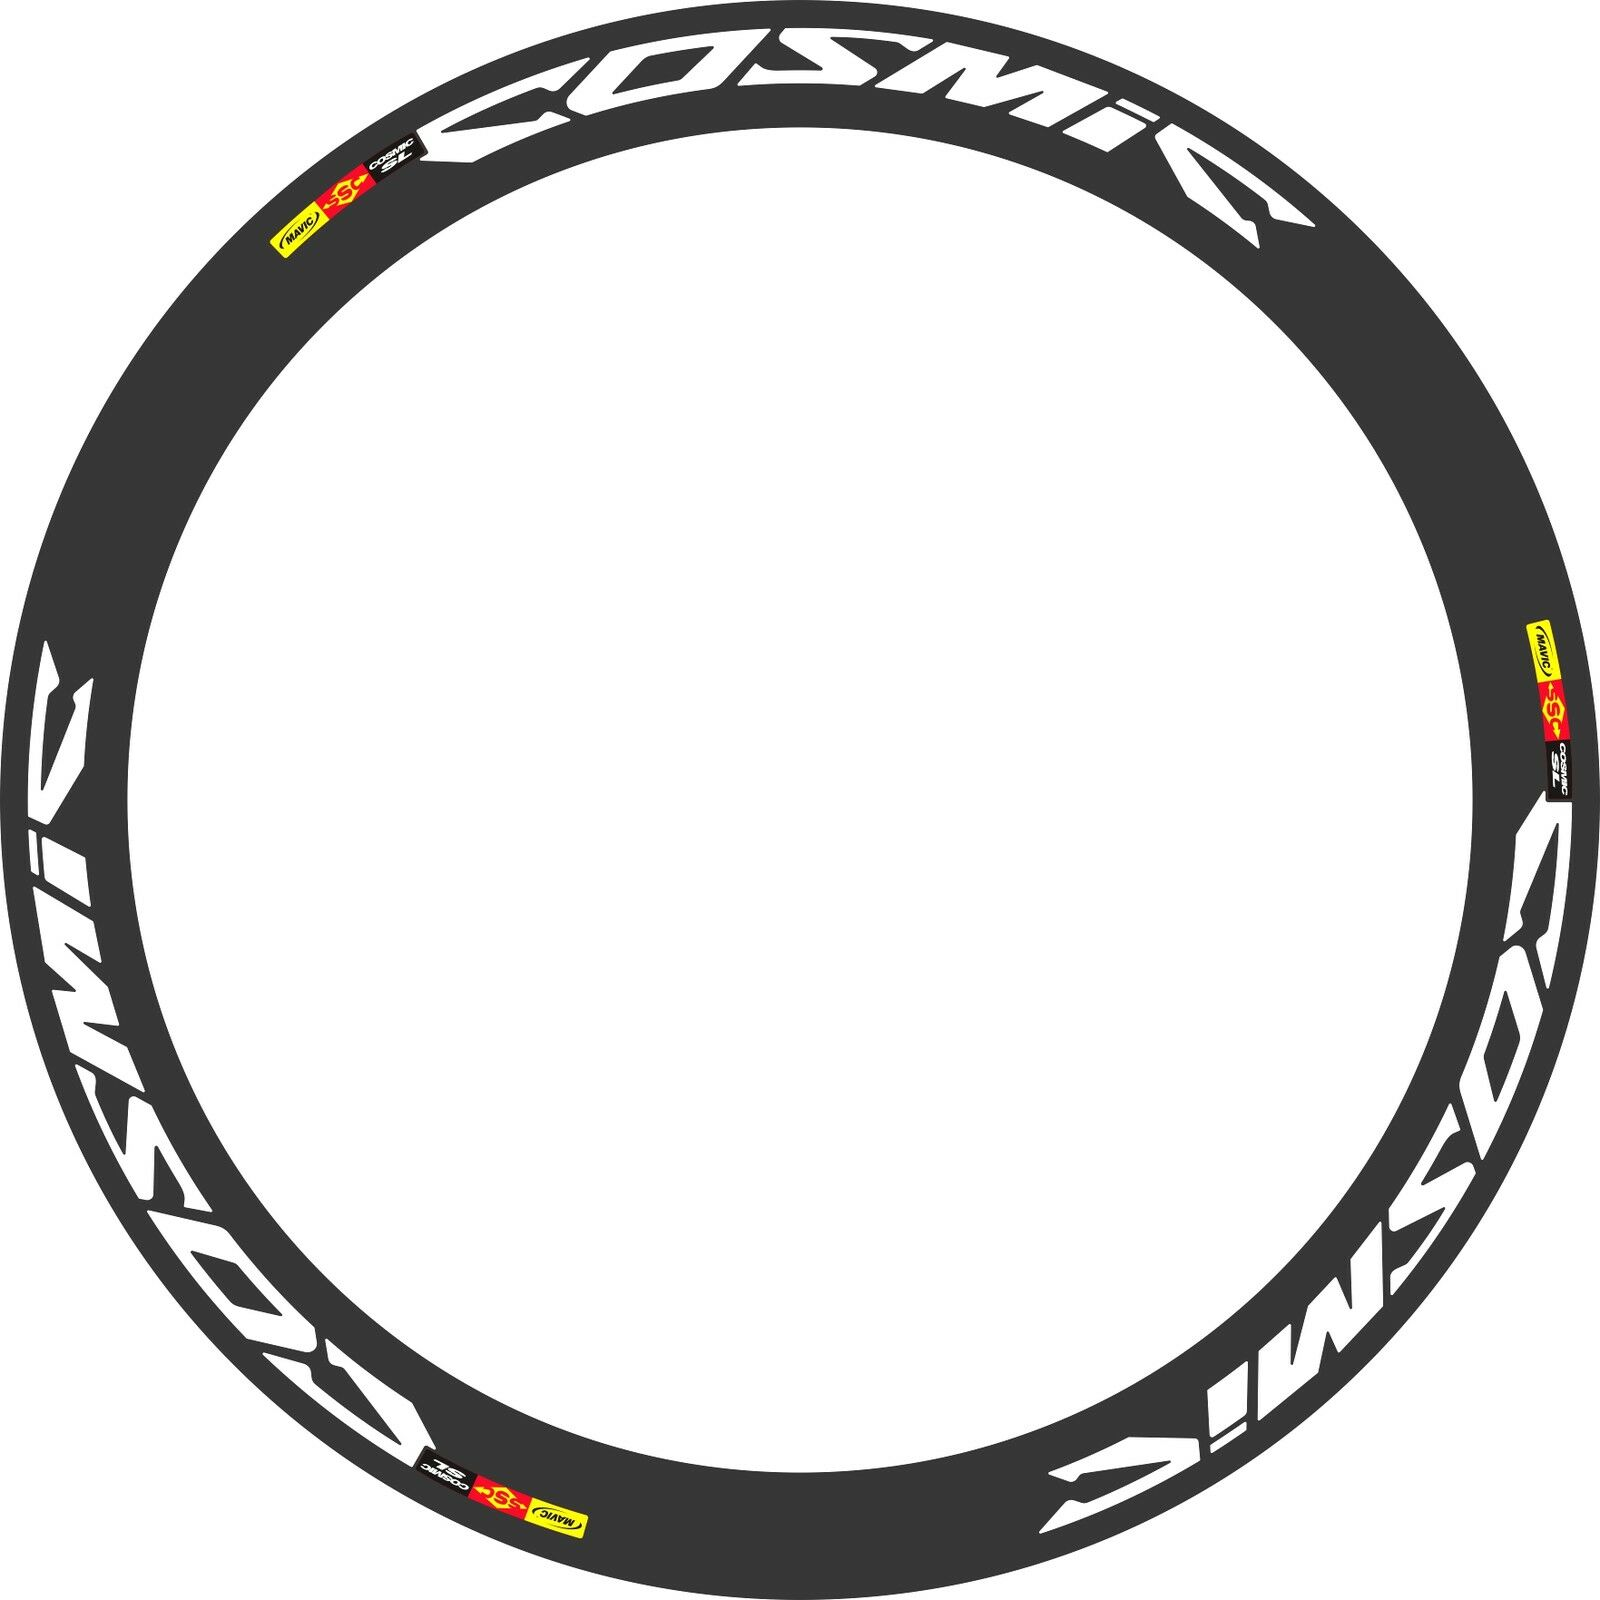 REFLECTIVE MAVIC COSMIC SL DECAL SET FOR TWO WHEELS